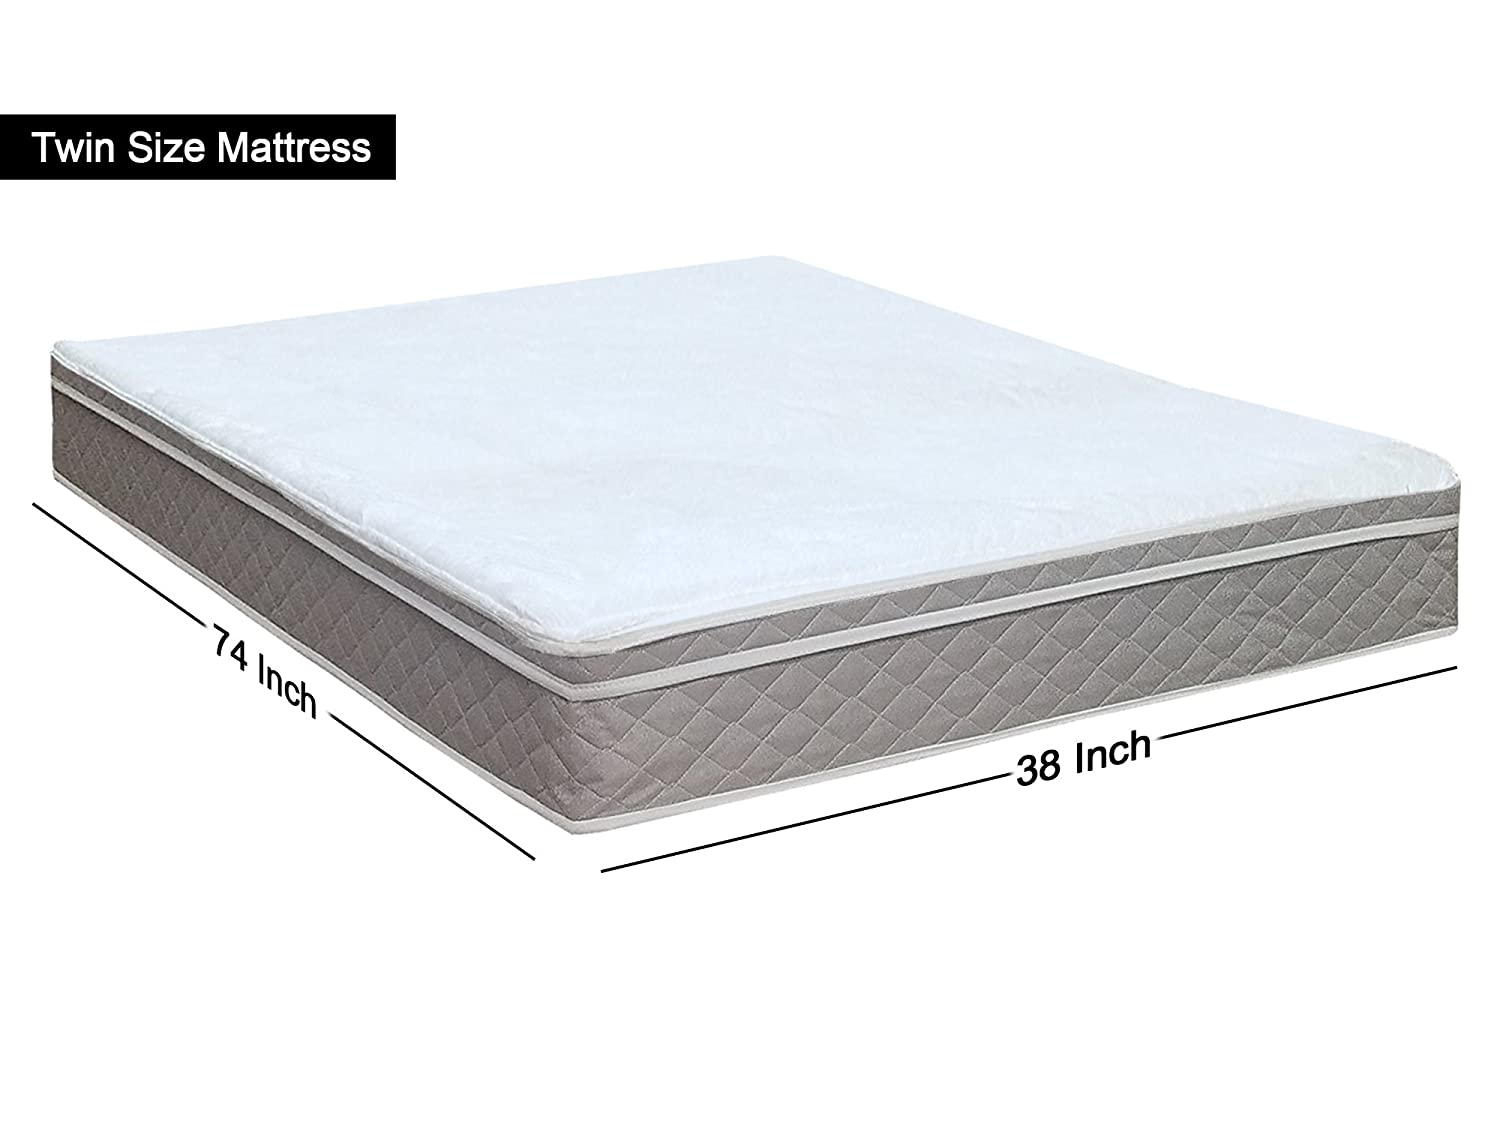 Tomorrow Dream Collection Mattress Comfort 440z-3//3-2 10-inch Fully Assembled Orthopedic Back Support Plush Mattress And 8 Box Spring//Foundation Set Beige Color Size Twin